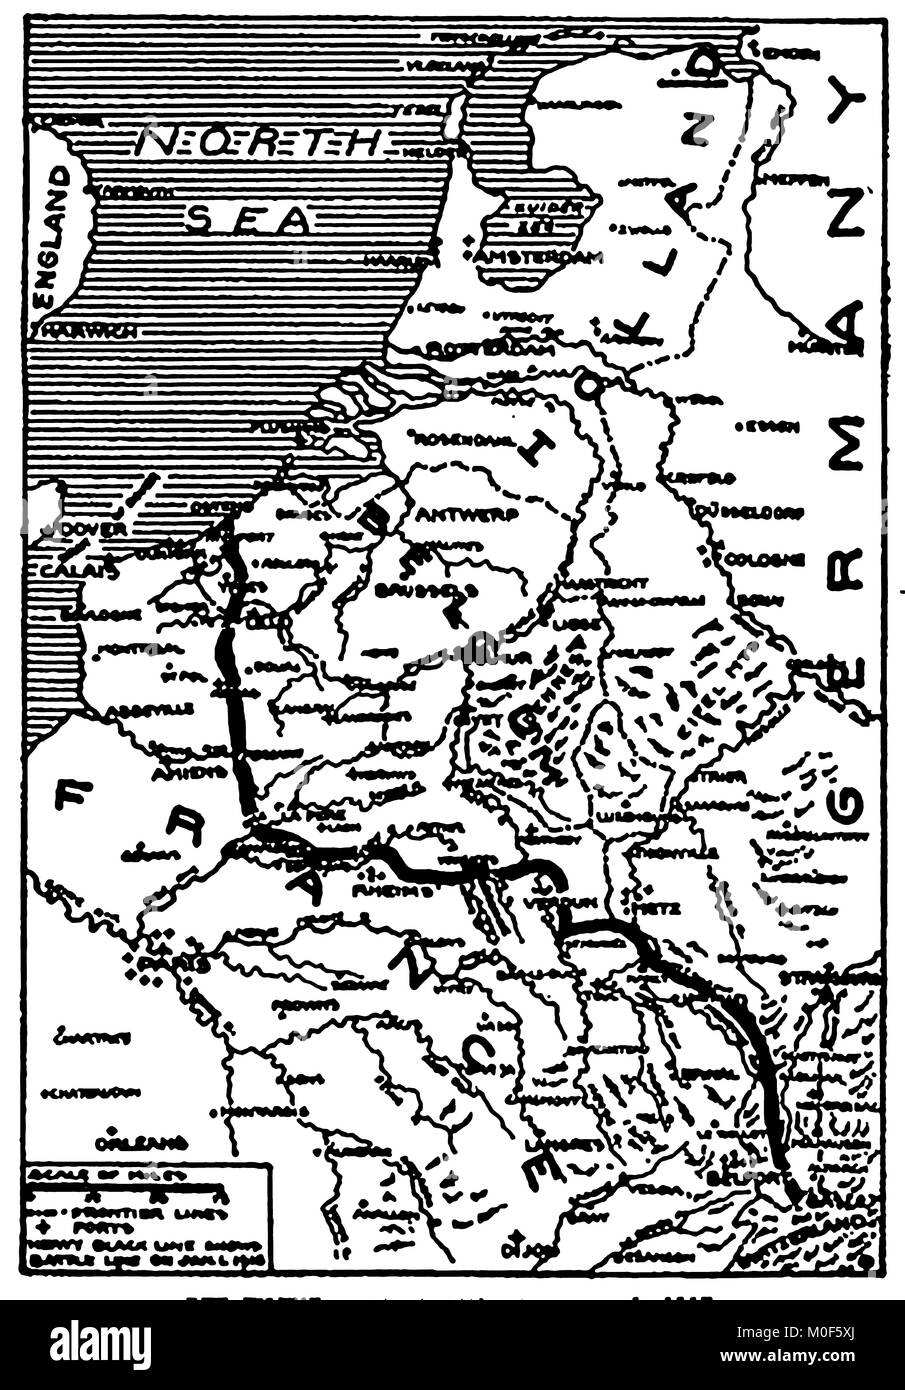 WWI - A 1917 map showing military activity in the 1914-1918 First World War - The Western Battle lines, France & Stock Photo